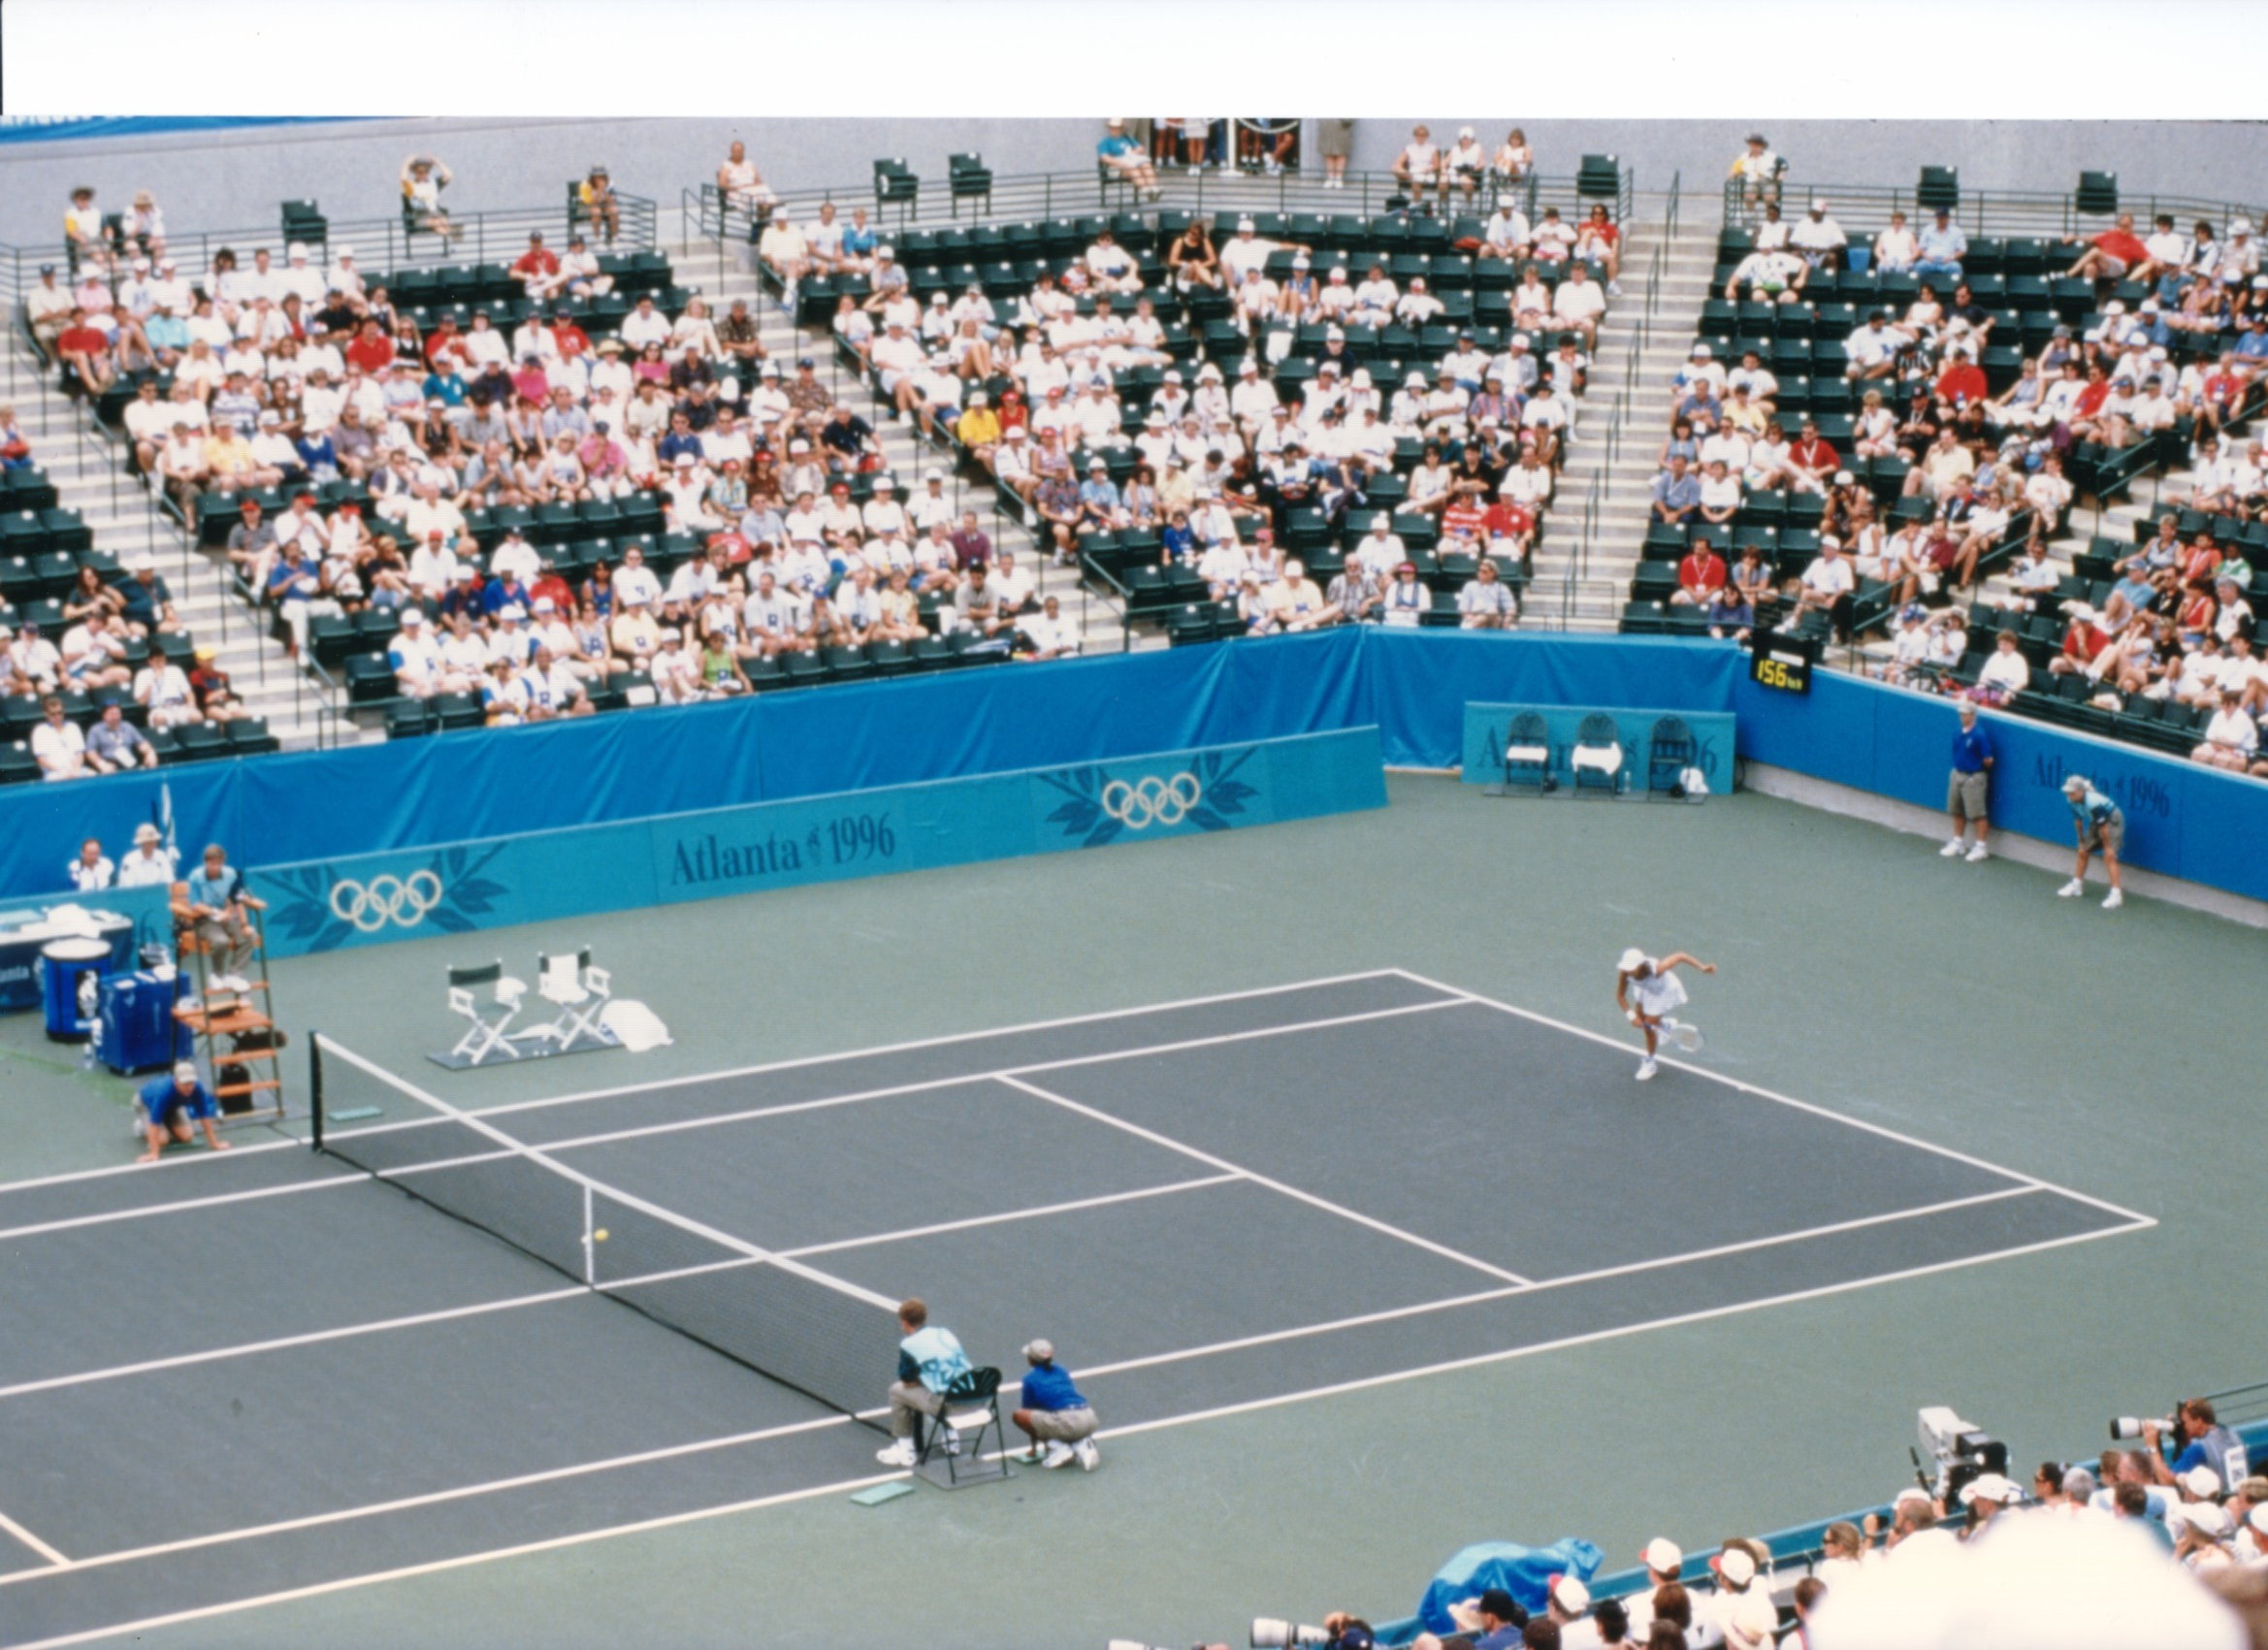 Olympic Tennis Venues: Who Takes Gold?